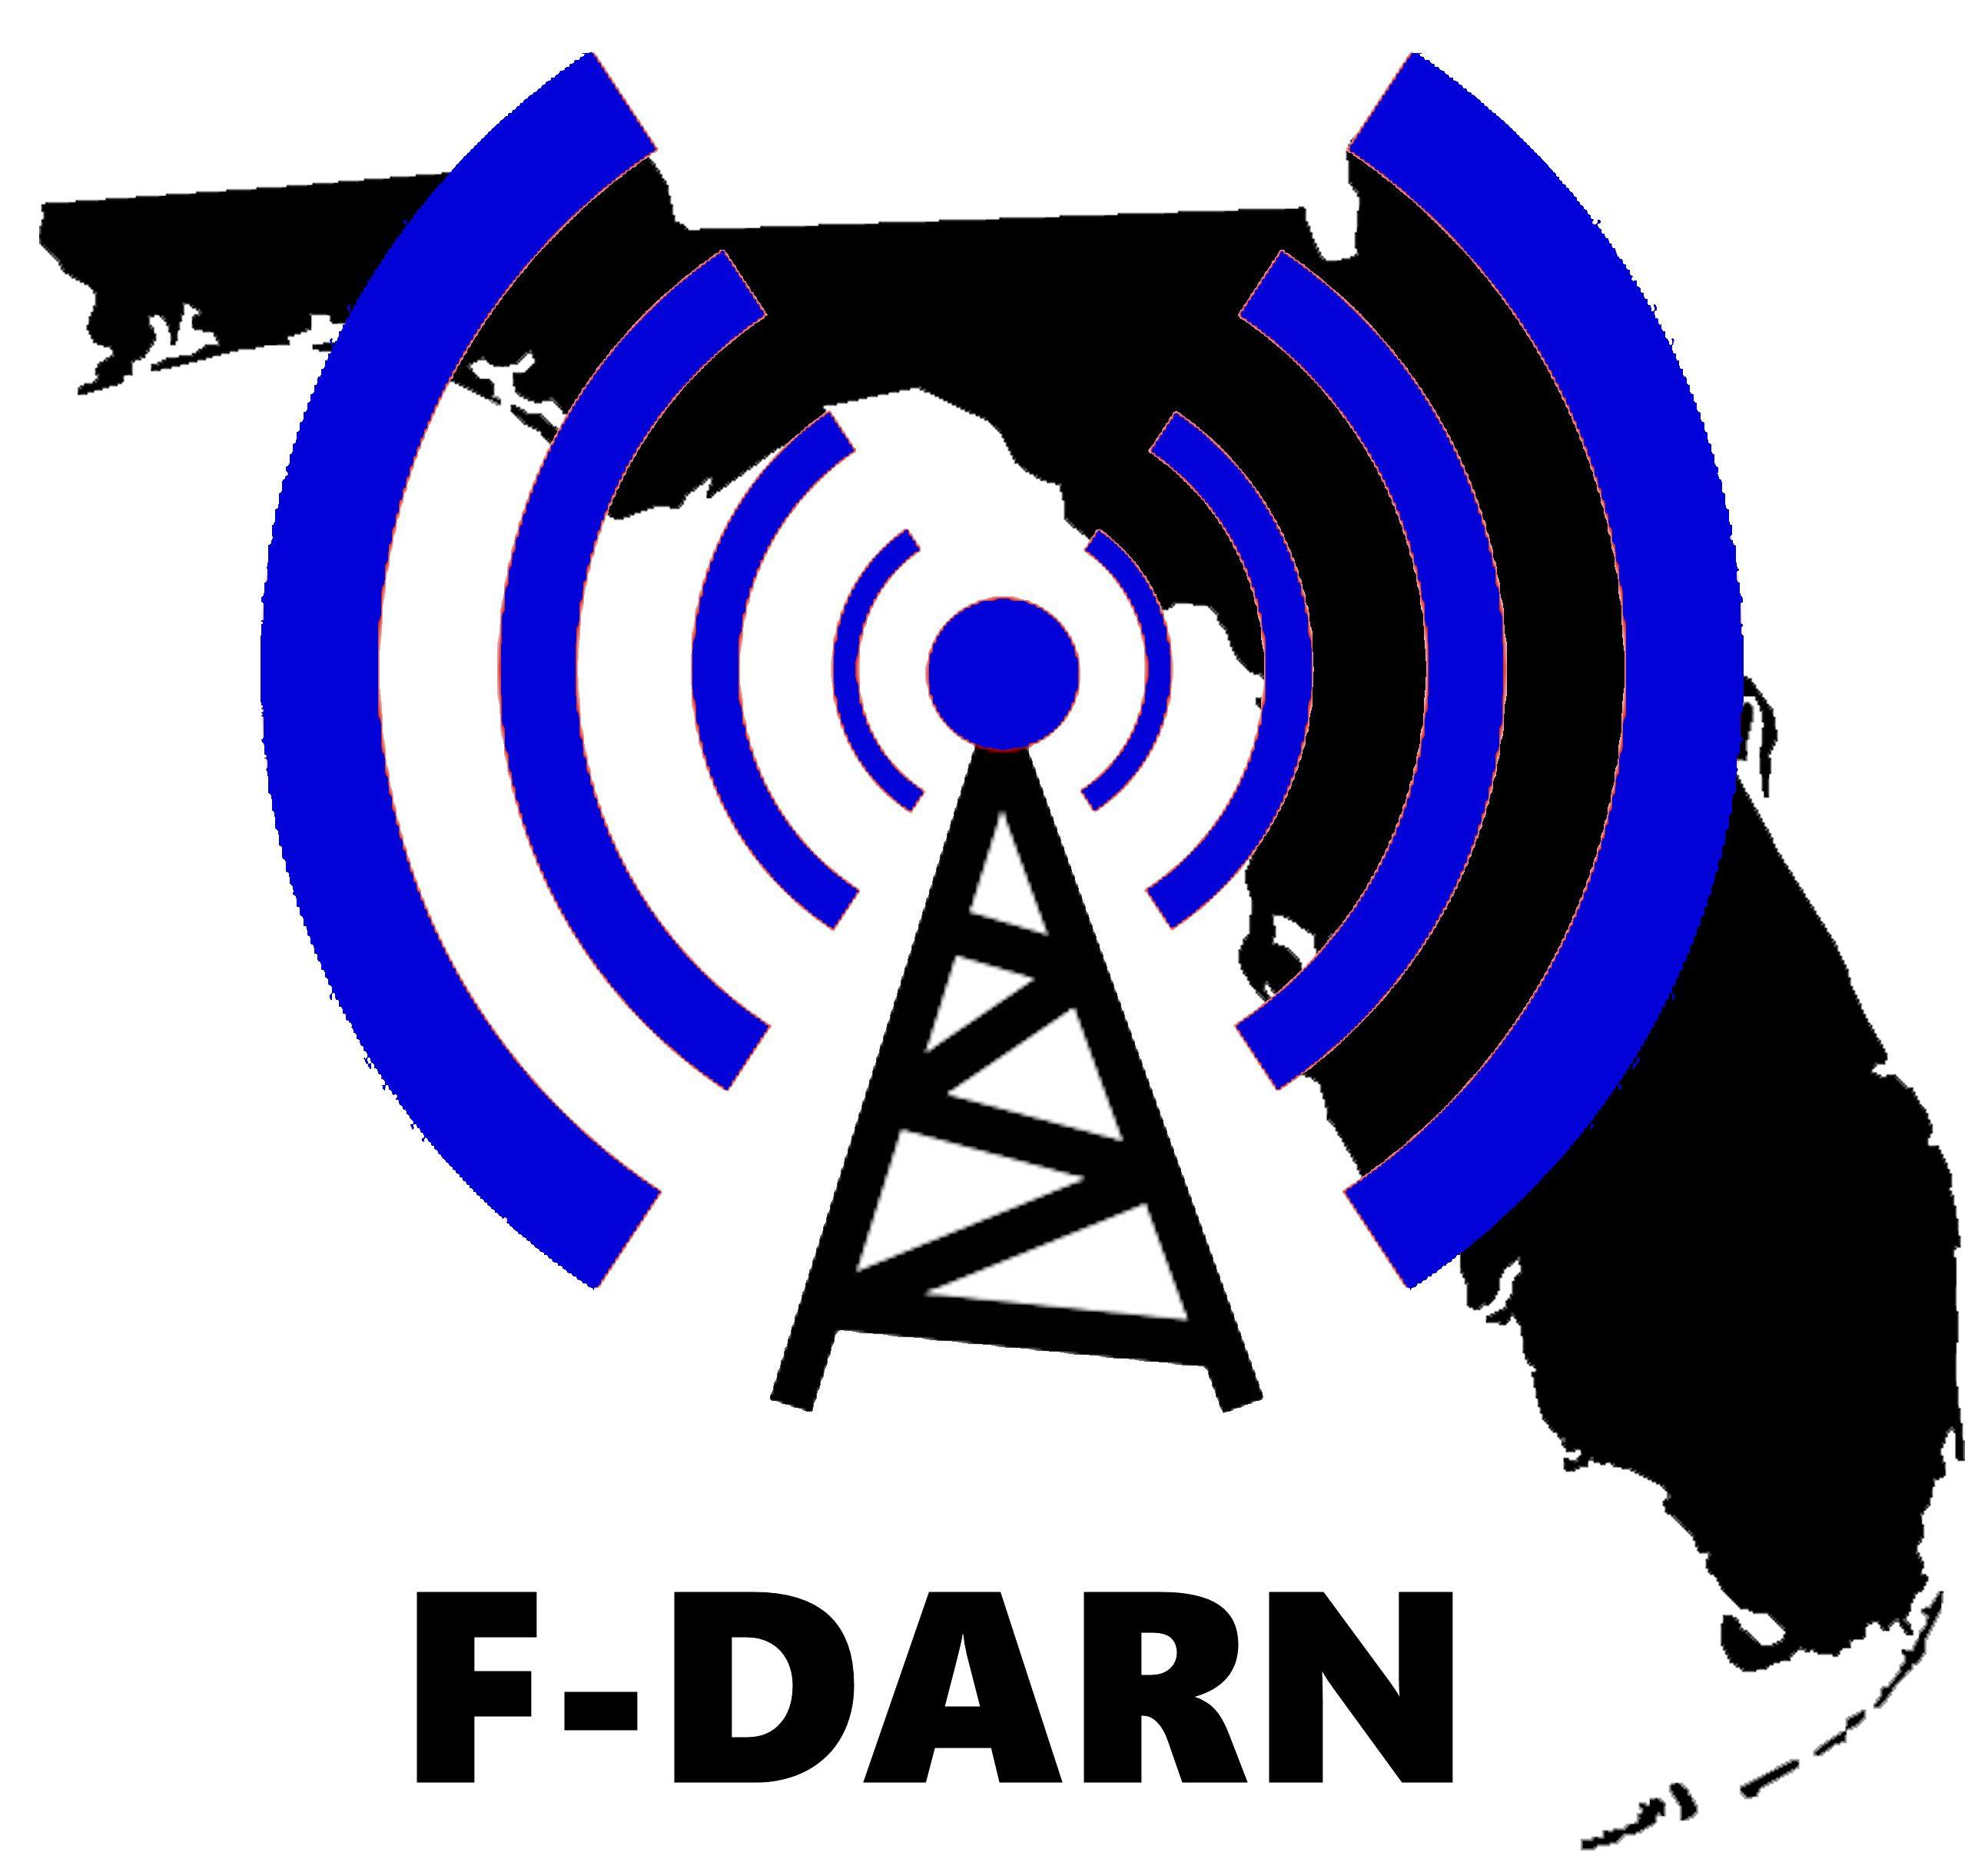 Florida Digital Amateur Radio Network